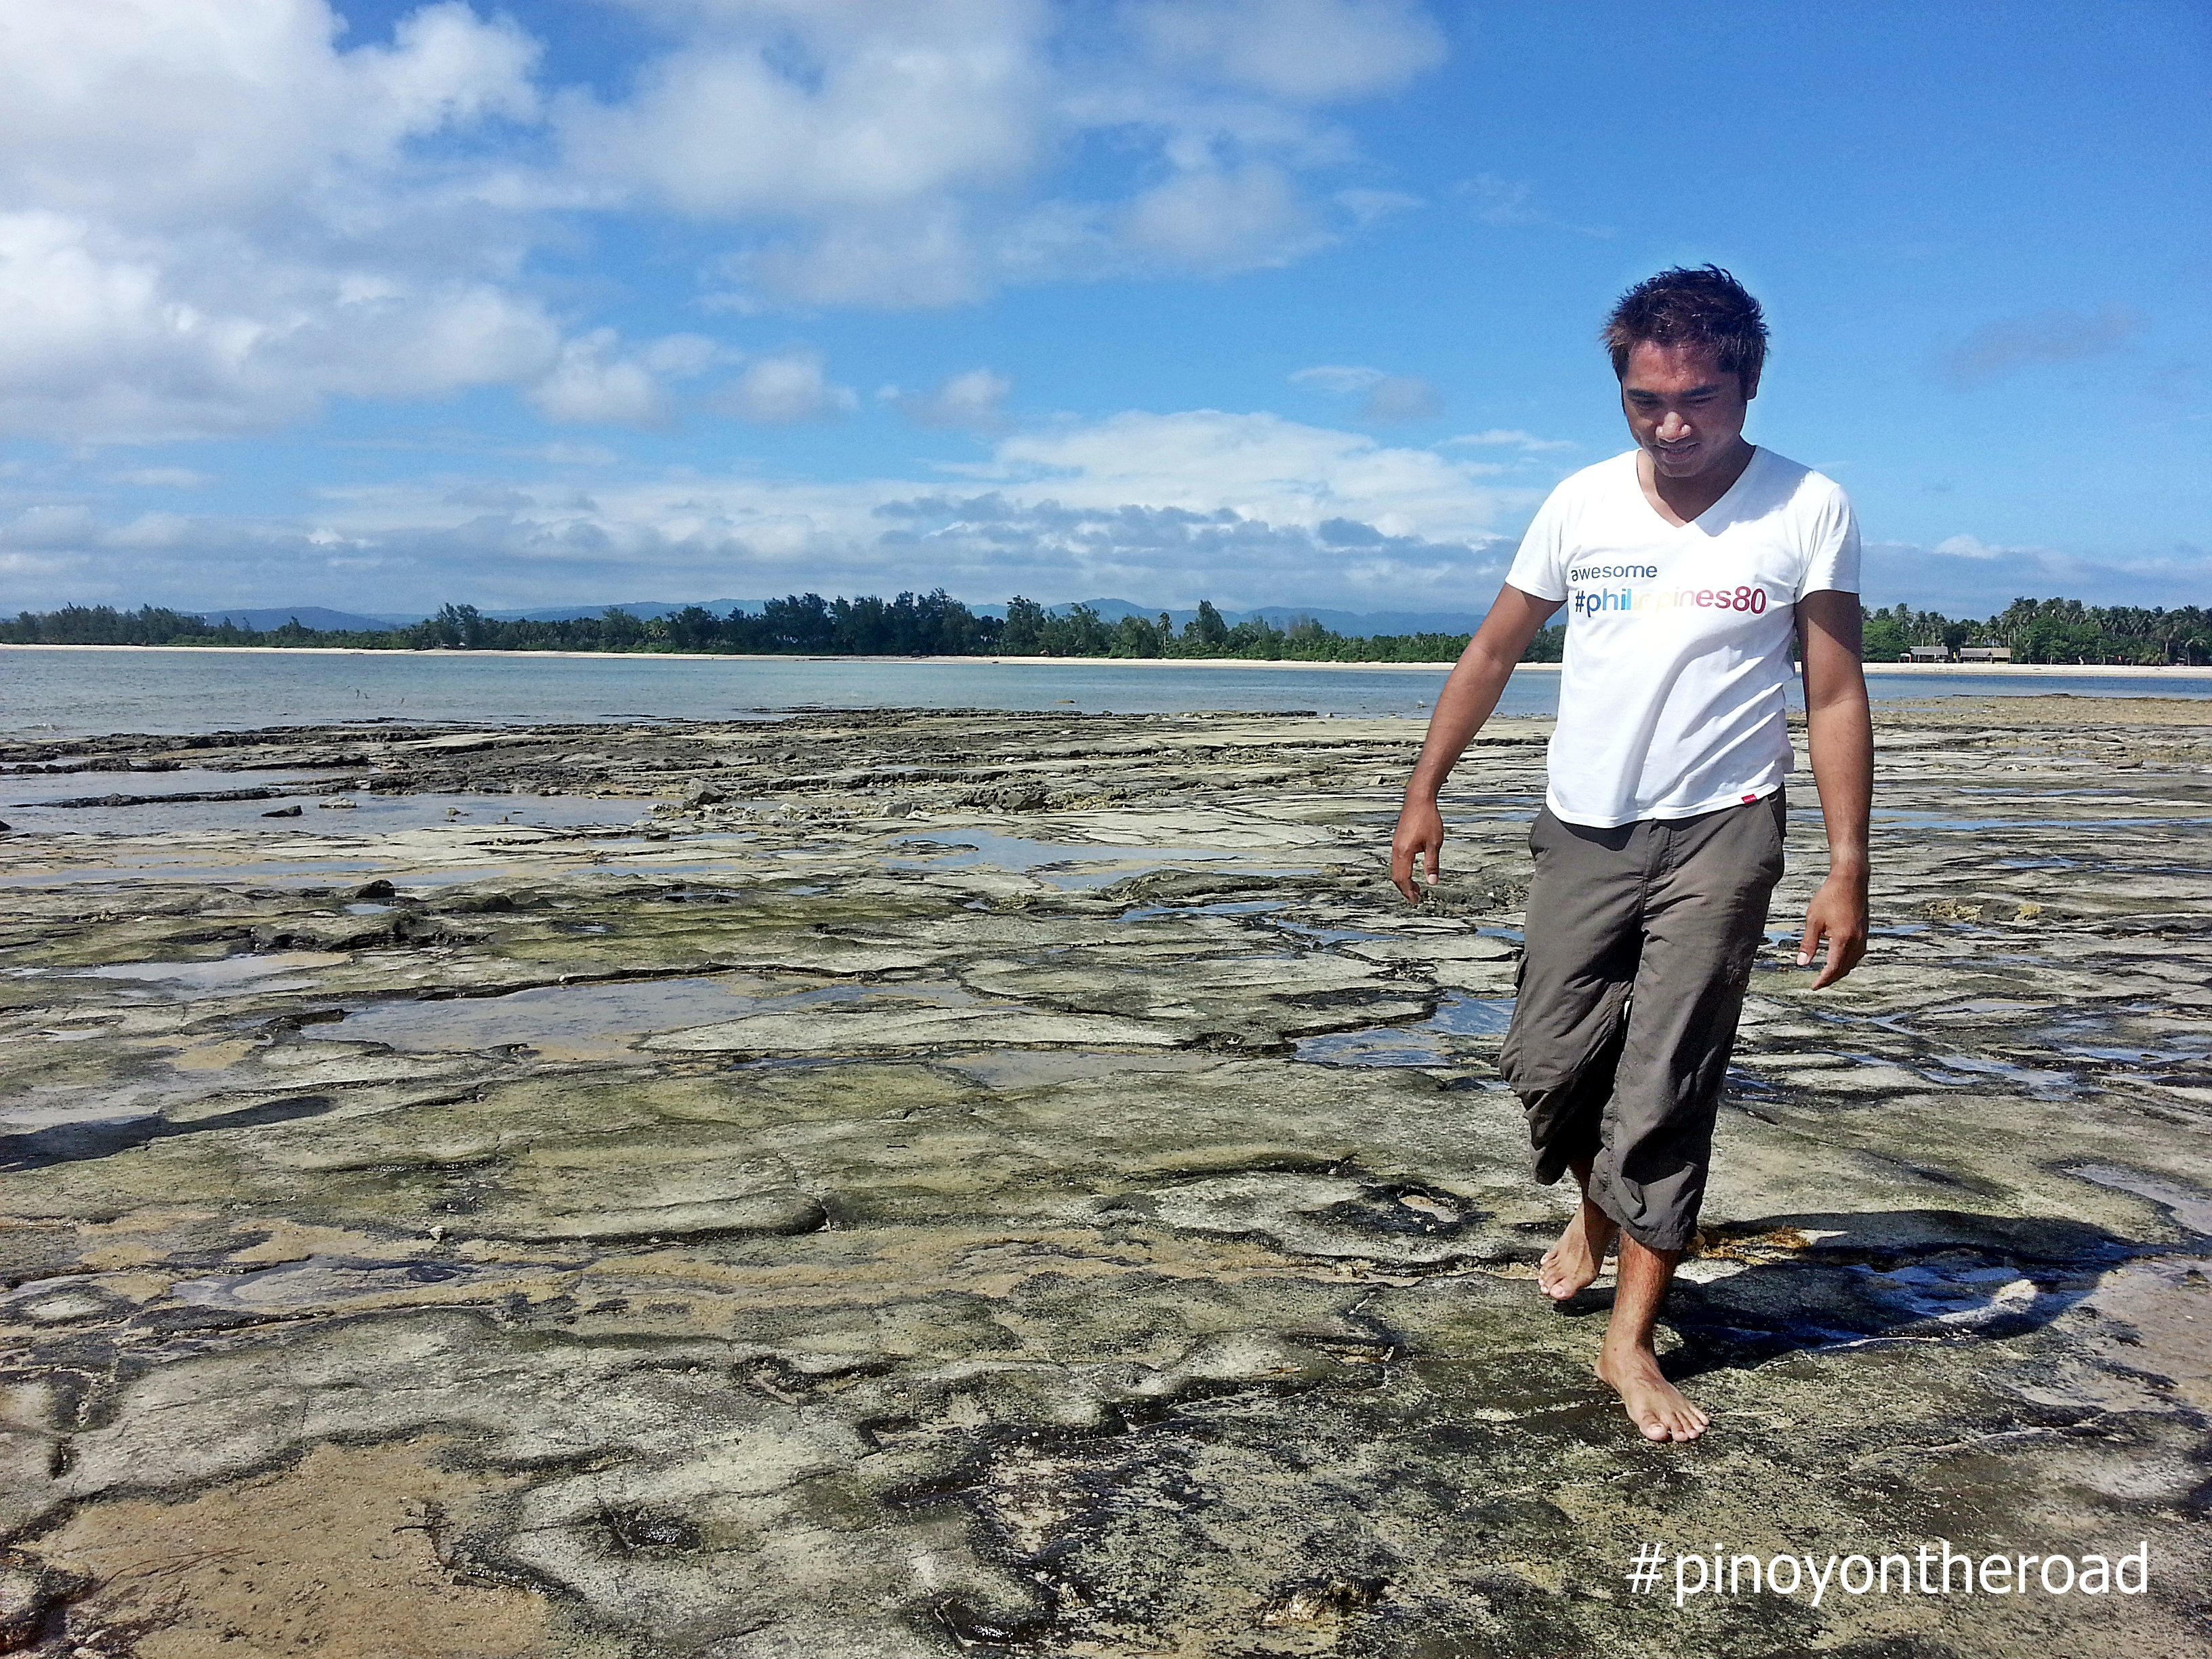 exploring the bonsai island in cagbalete pinoyontheroad quezon bonsai island photo essay pinoy on the road